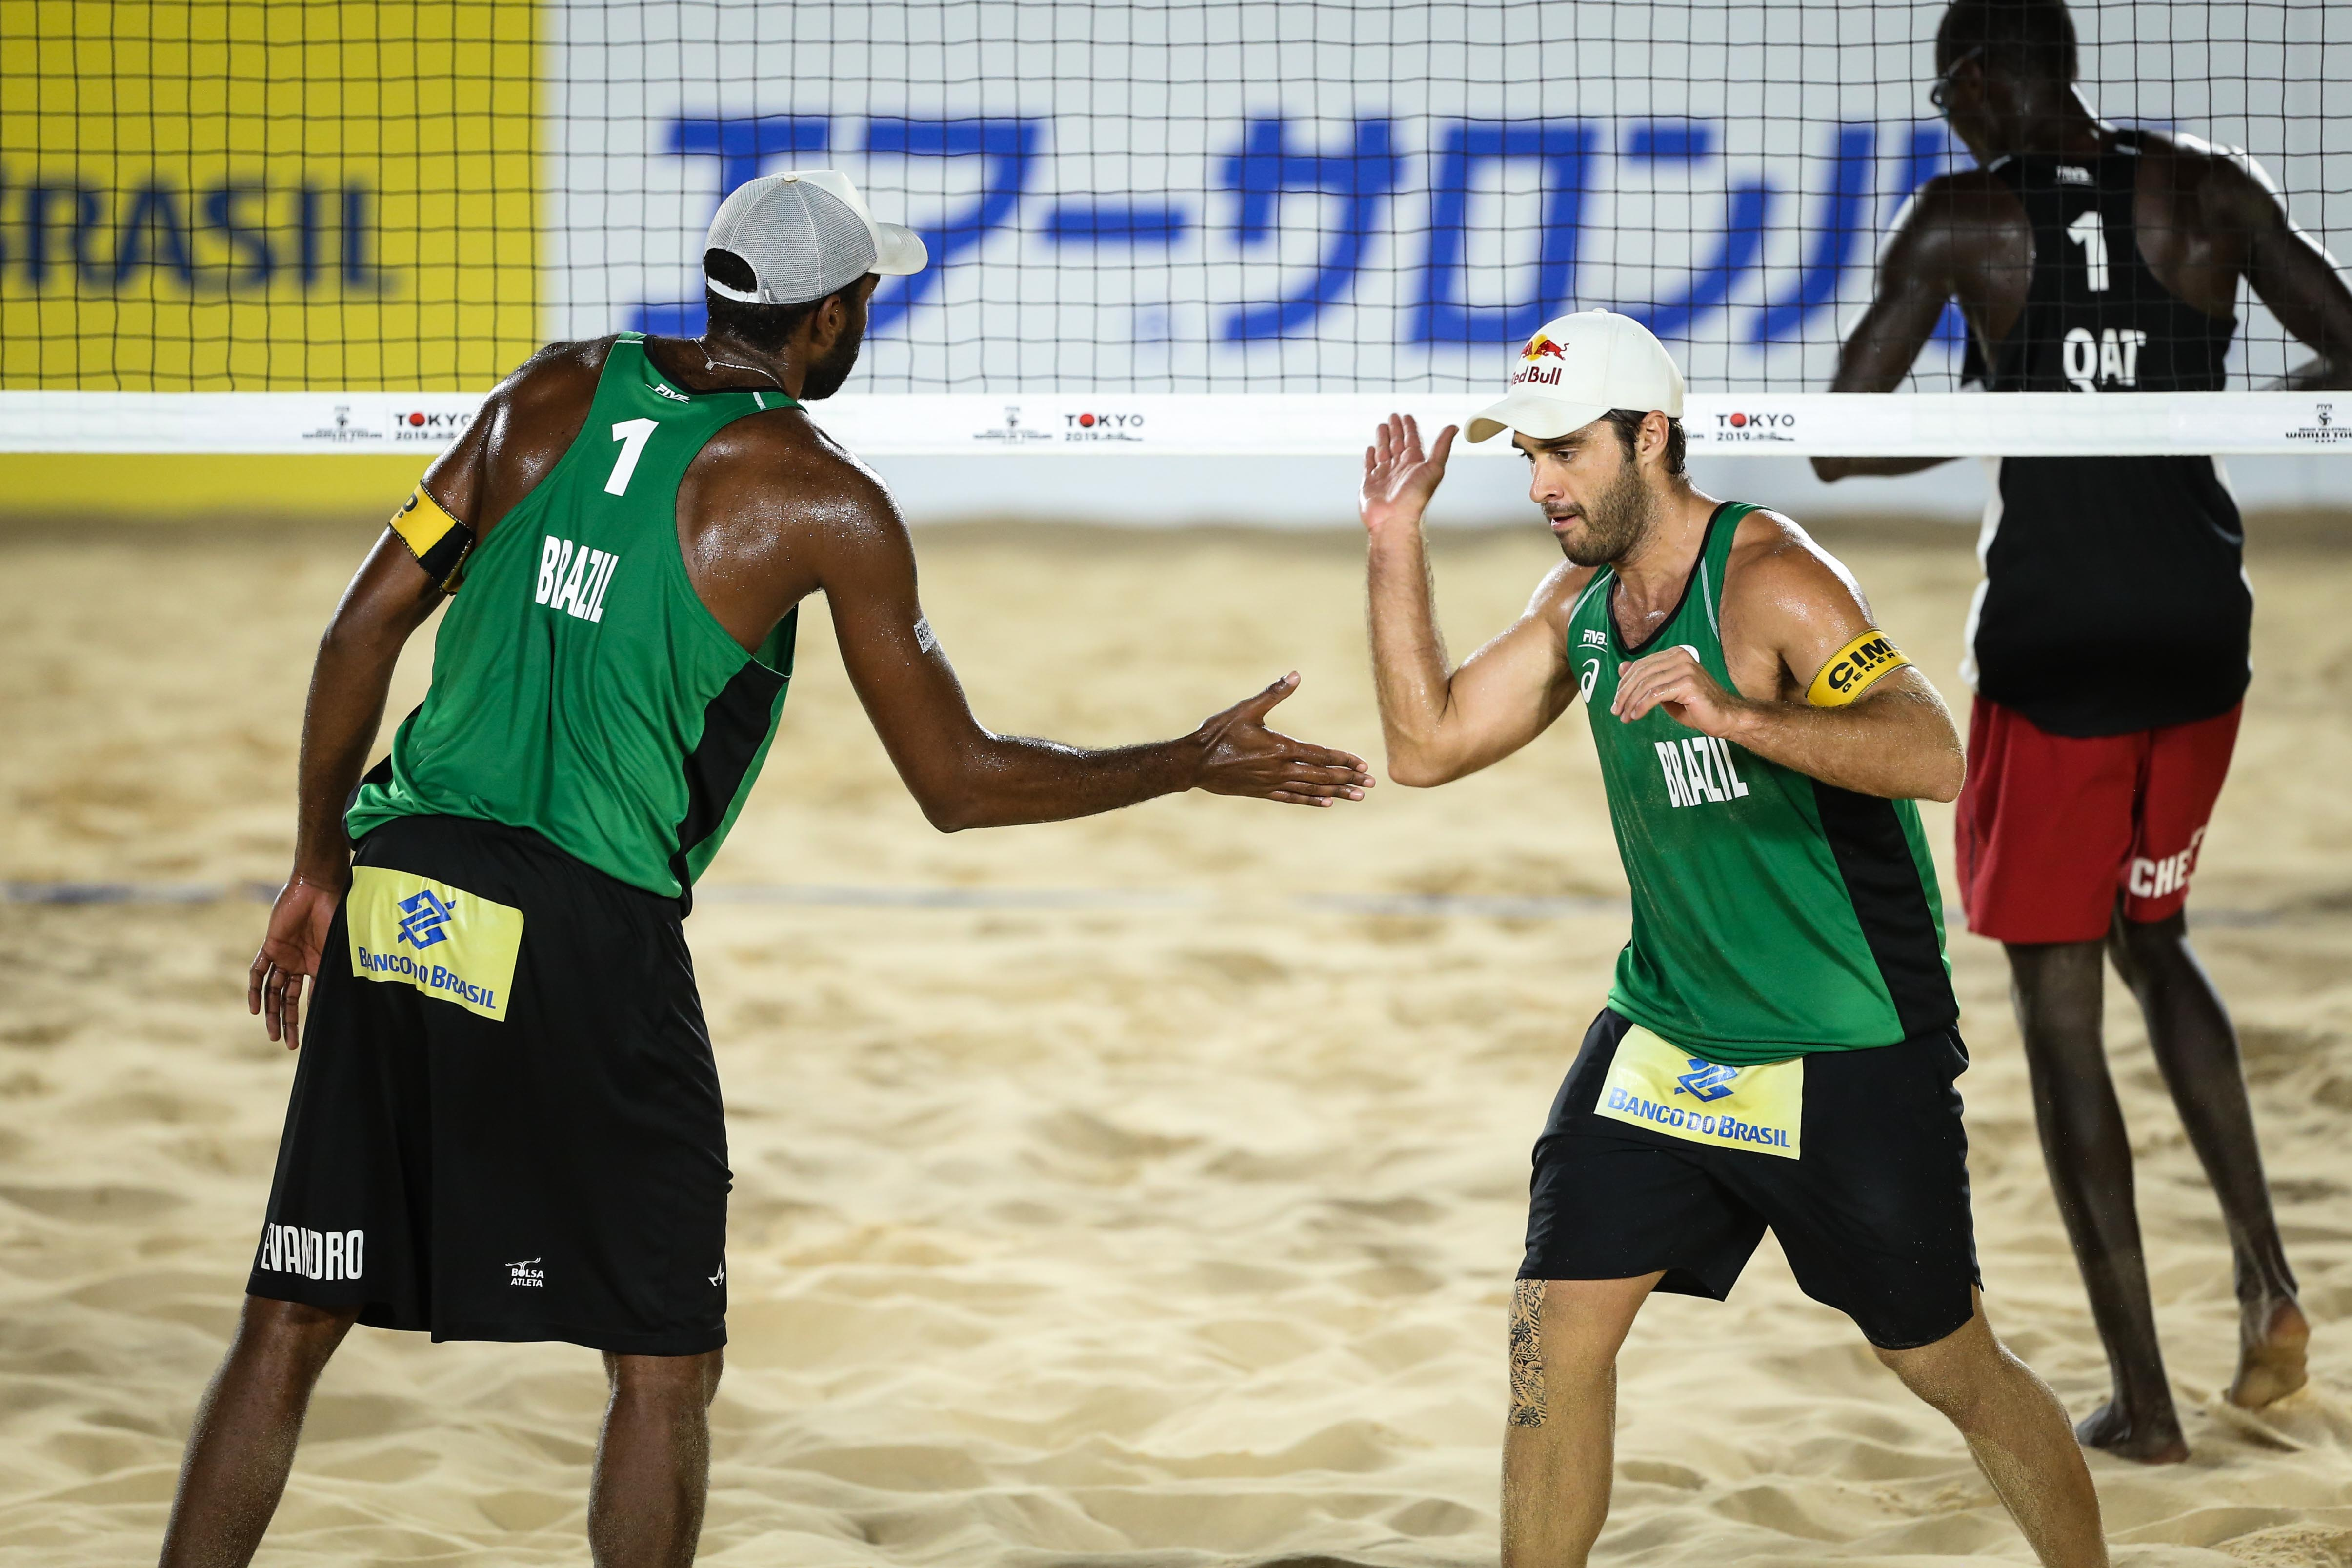 News - Olympic qualification reaches turning point for Brazilians in Vienna